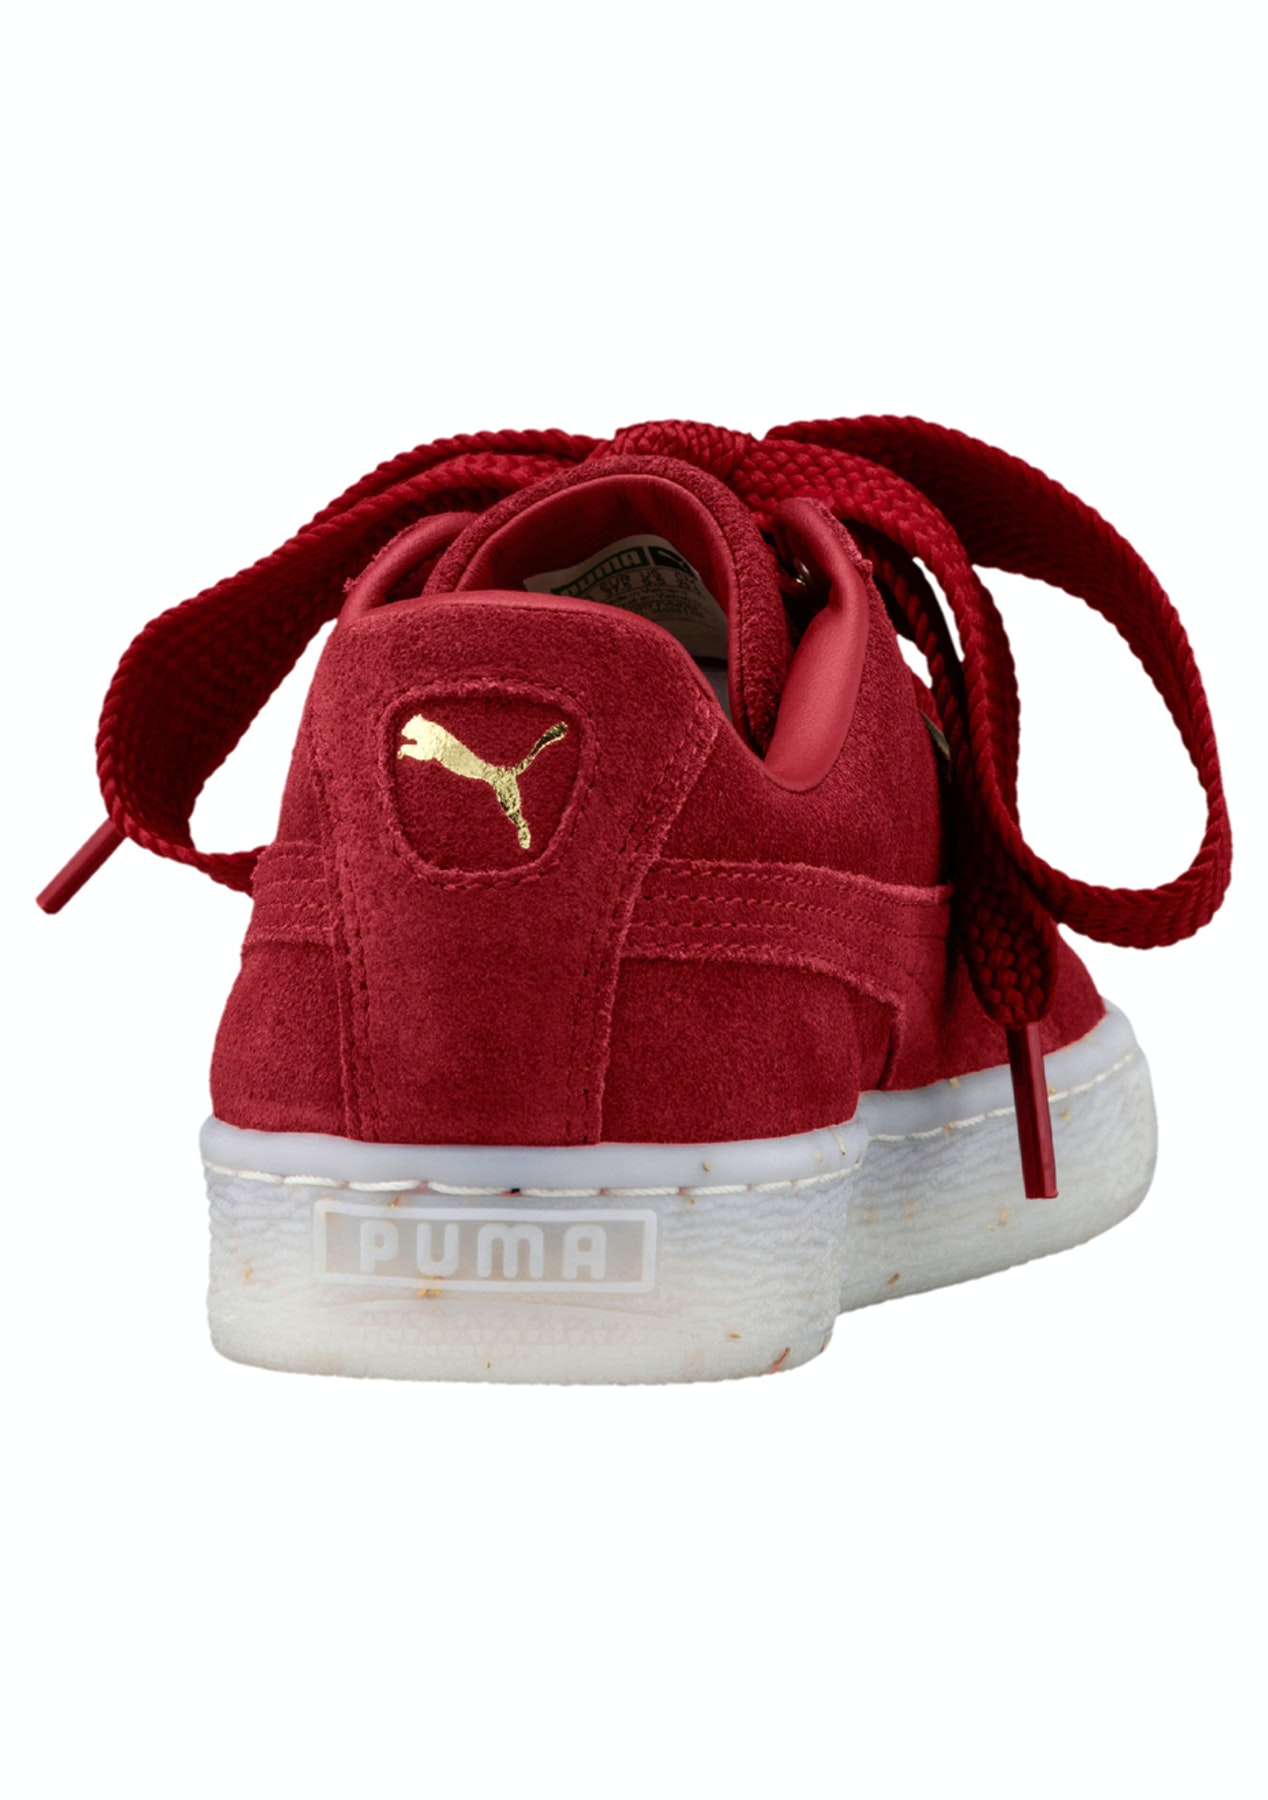 7226ec27e91db5 Puma Womens - Suede Heart Fabulous - Red - Big Brand Active - Onceit